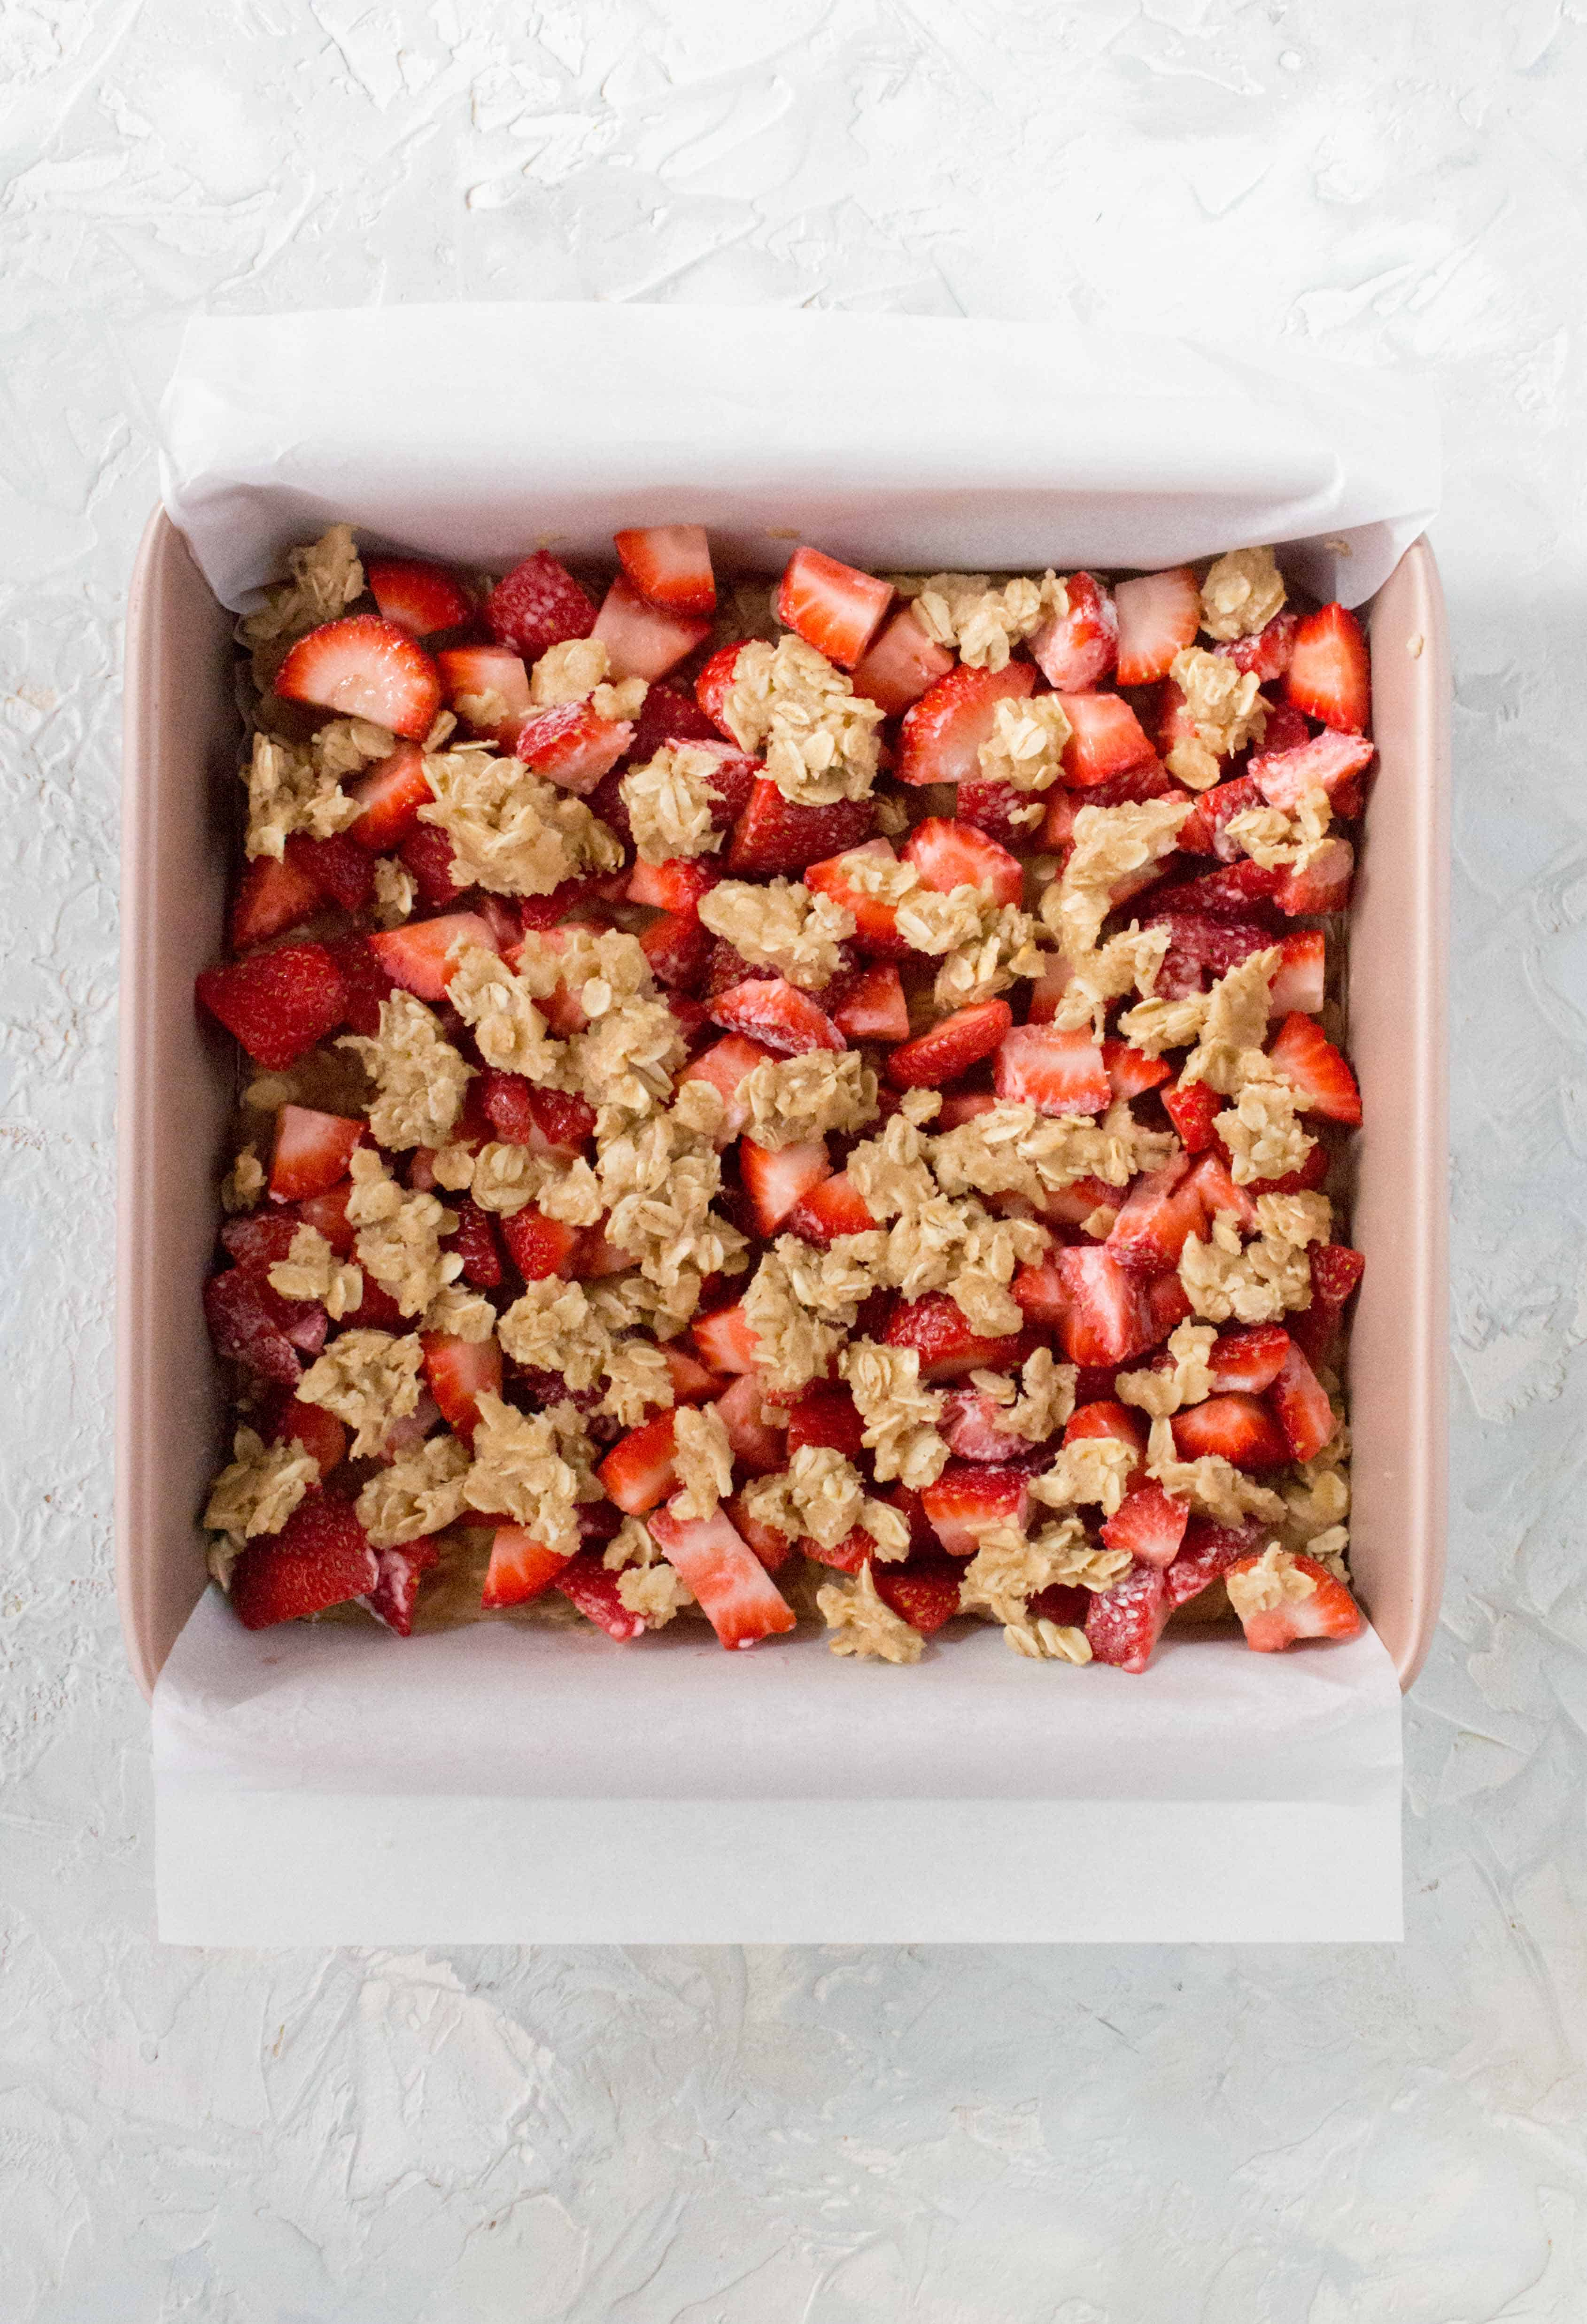 How To Make Strawberry Lemon Oatmeal Bars